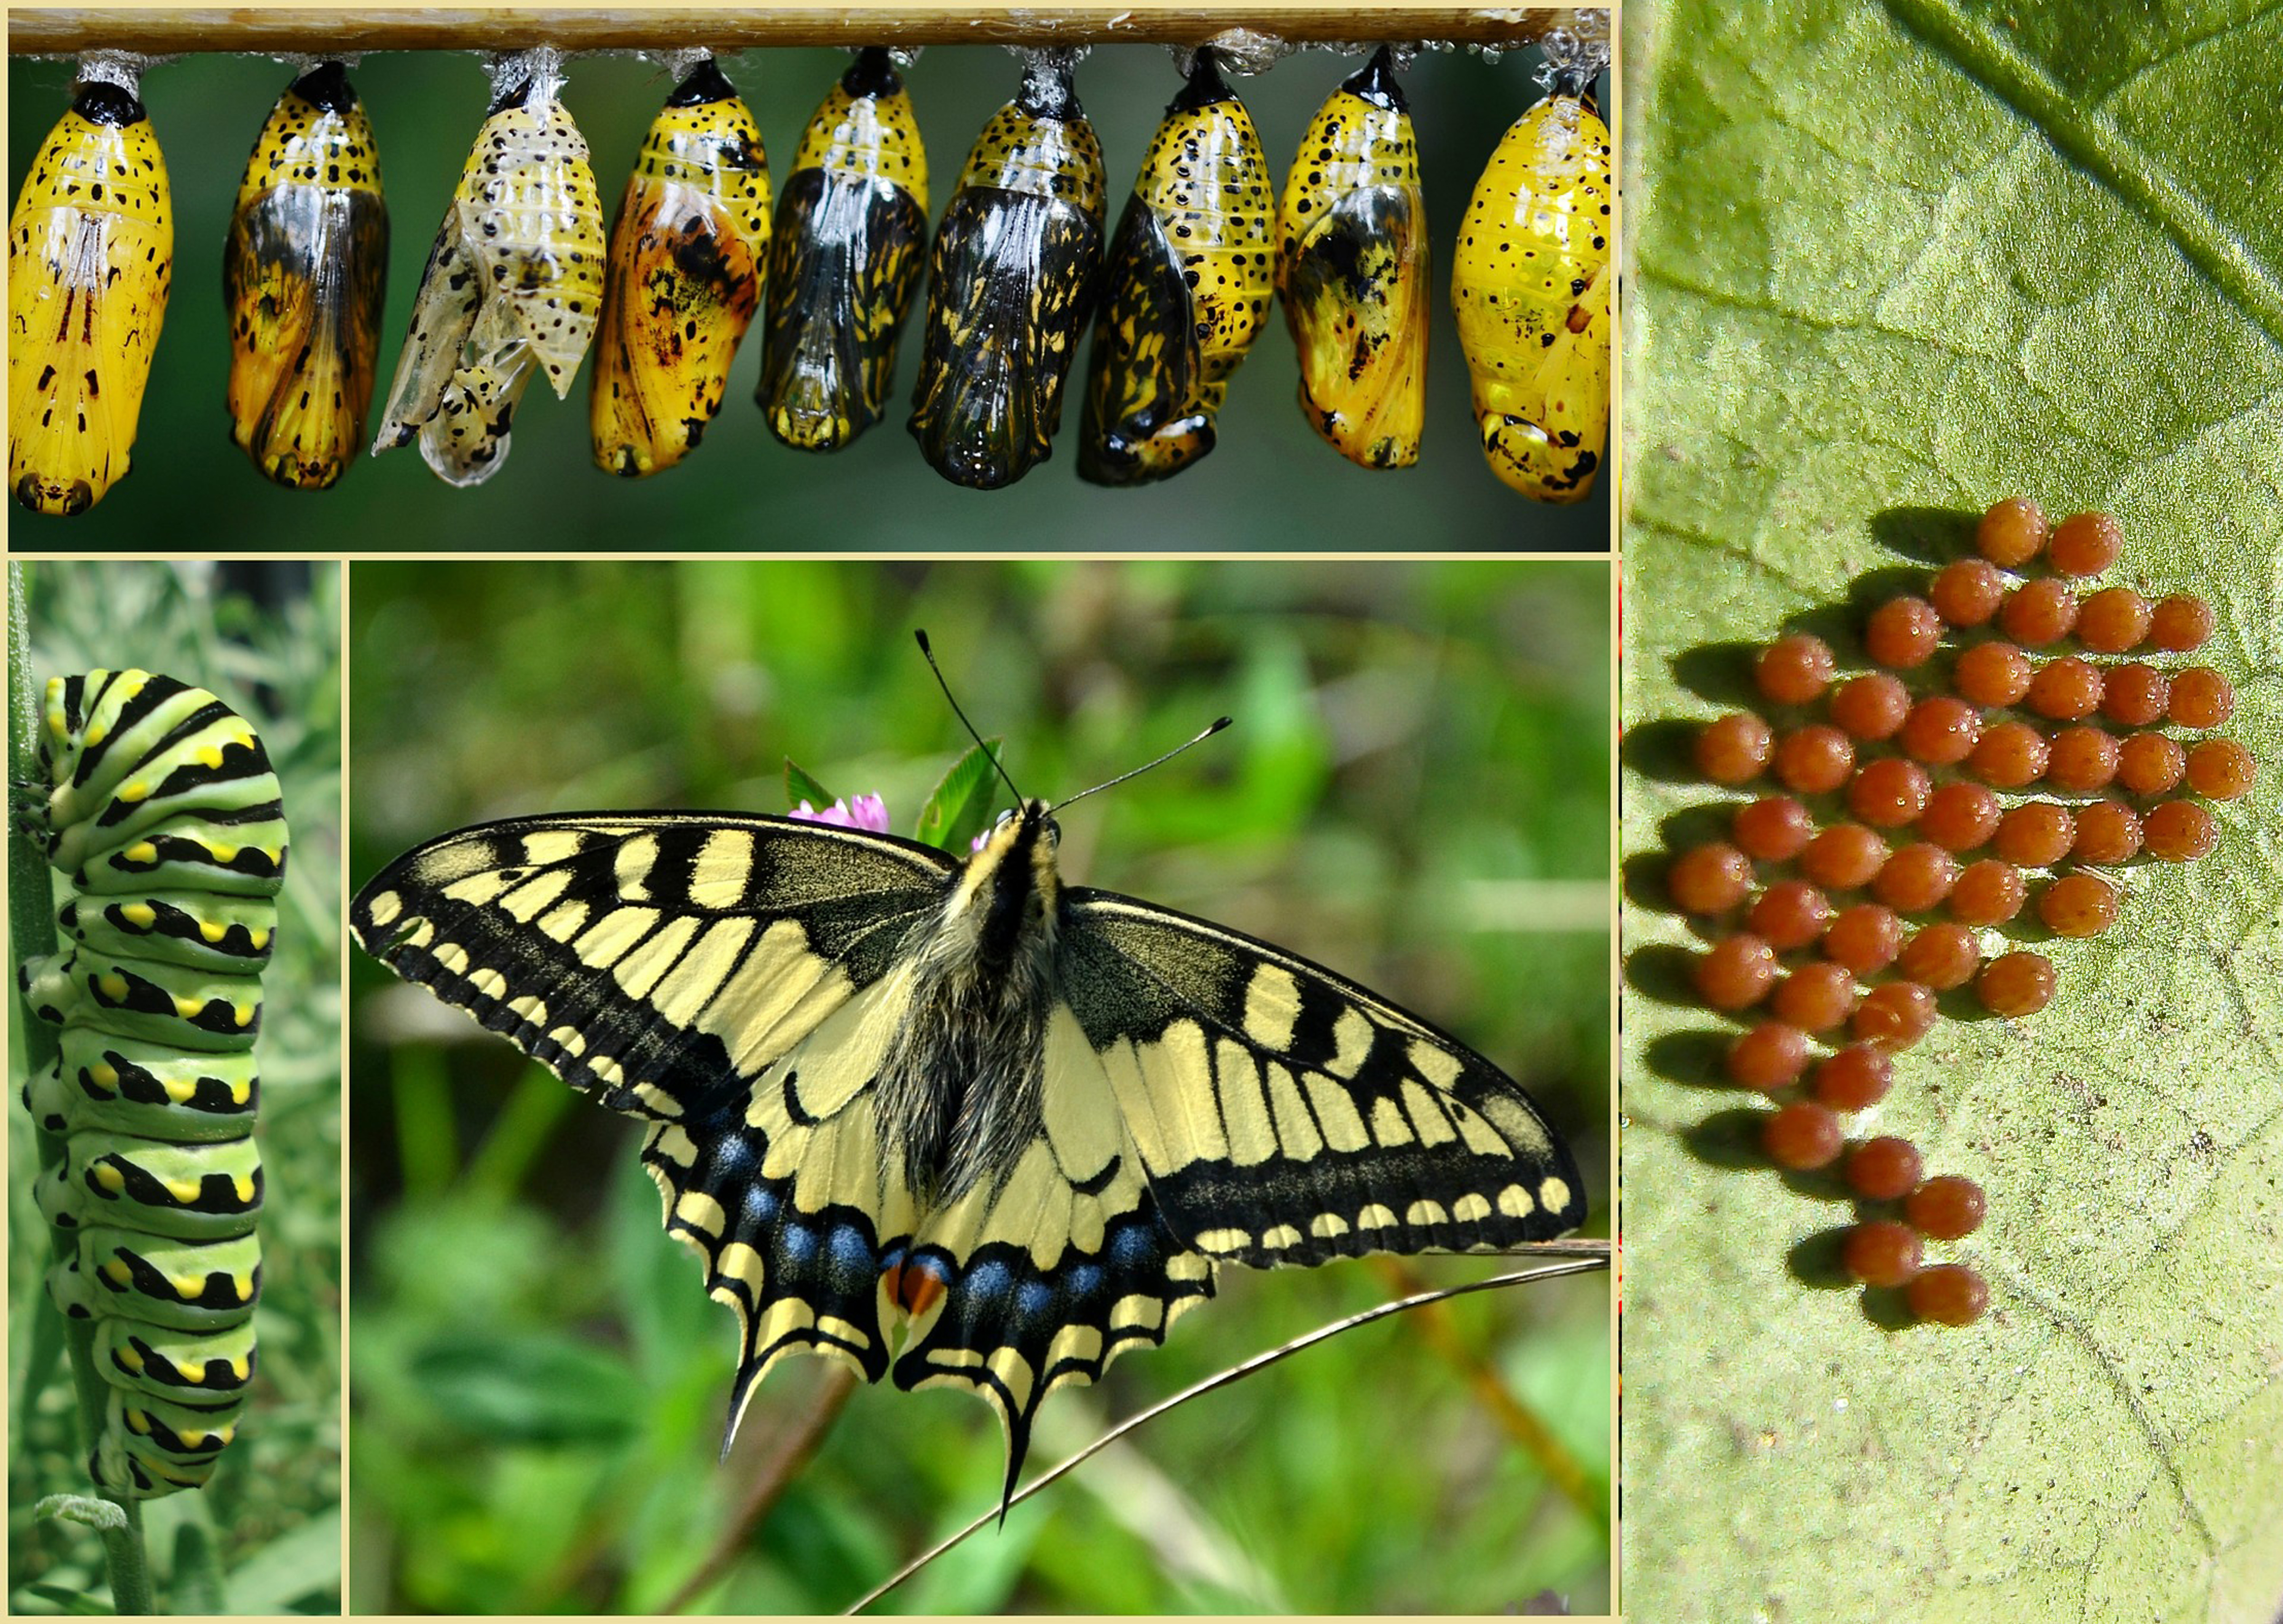 Stages of the butterfly's life cycle.